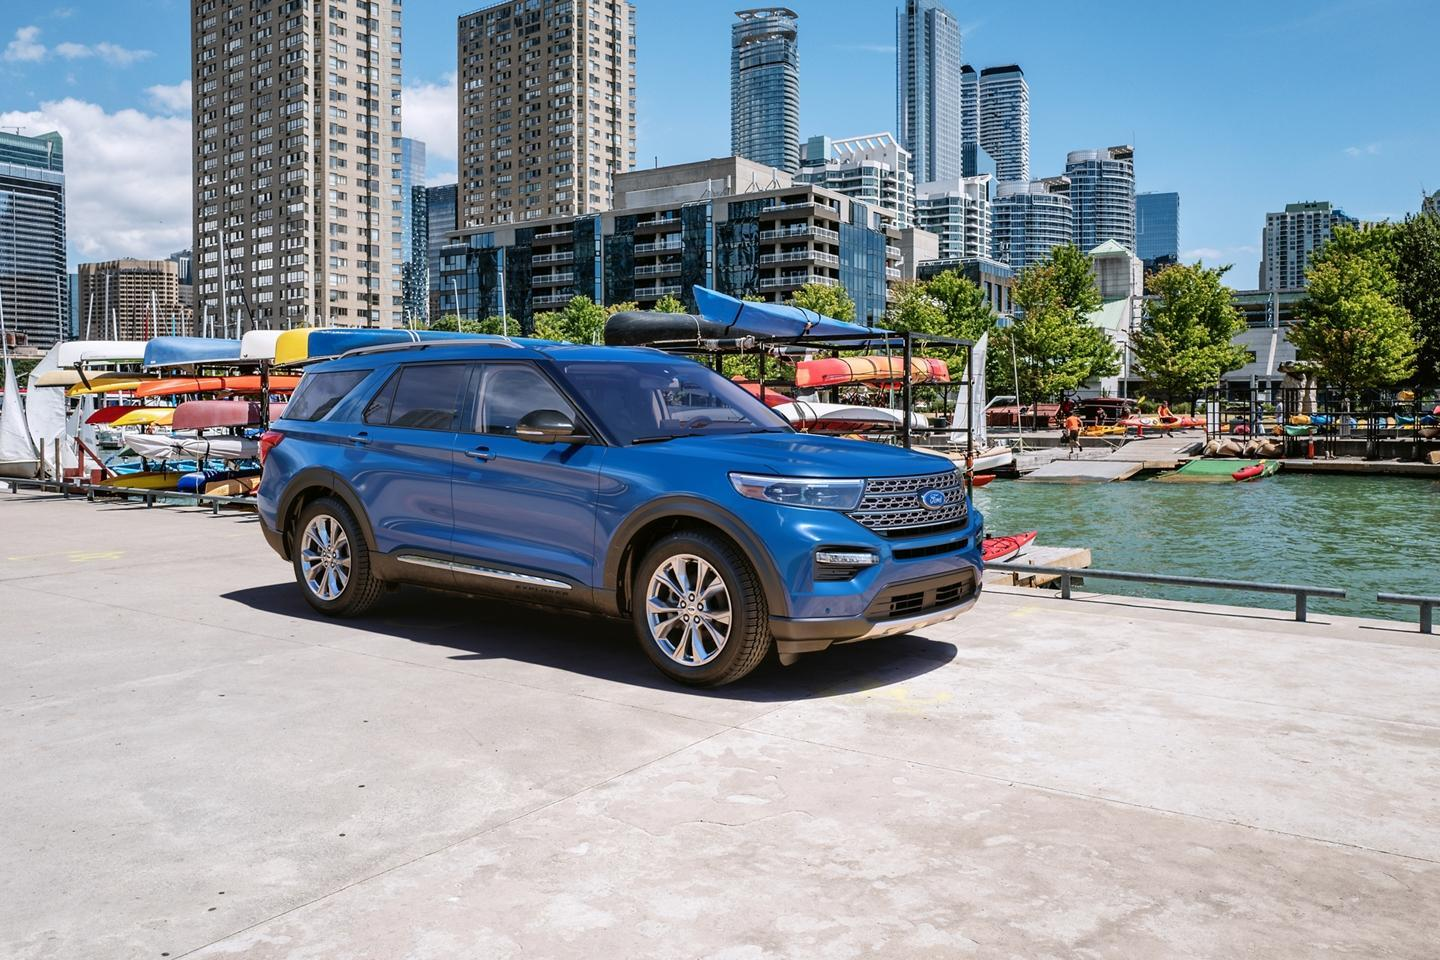 Ford 2020 Explorer image